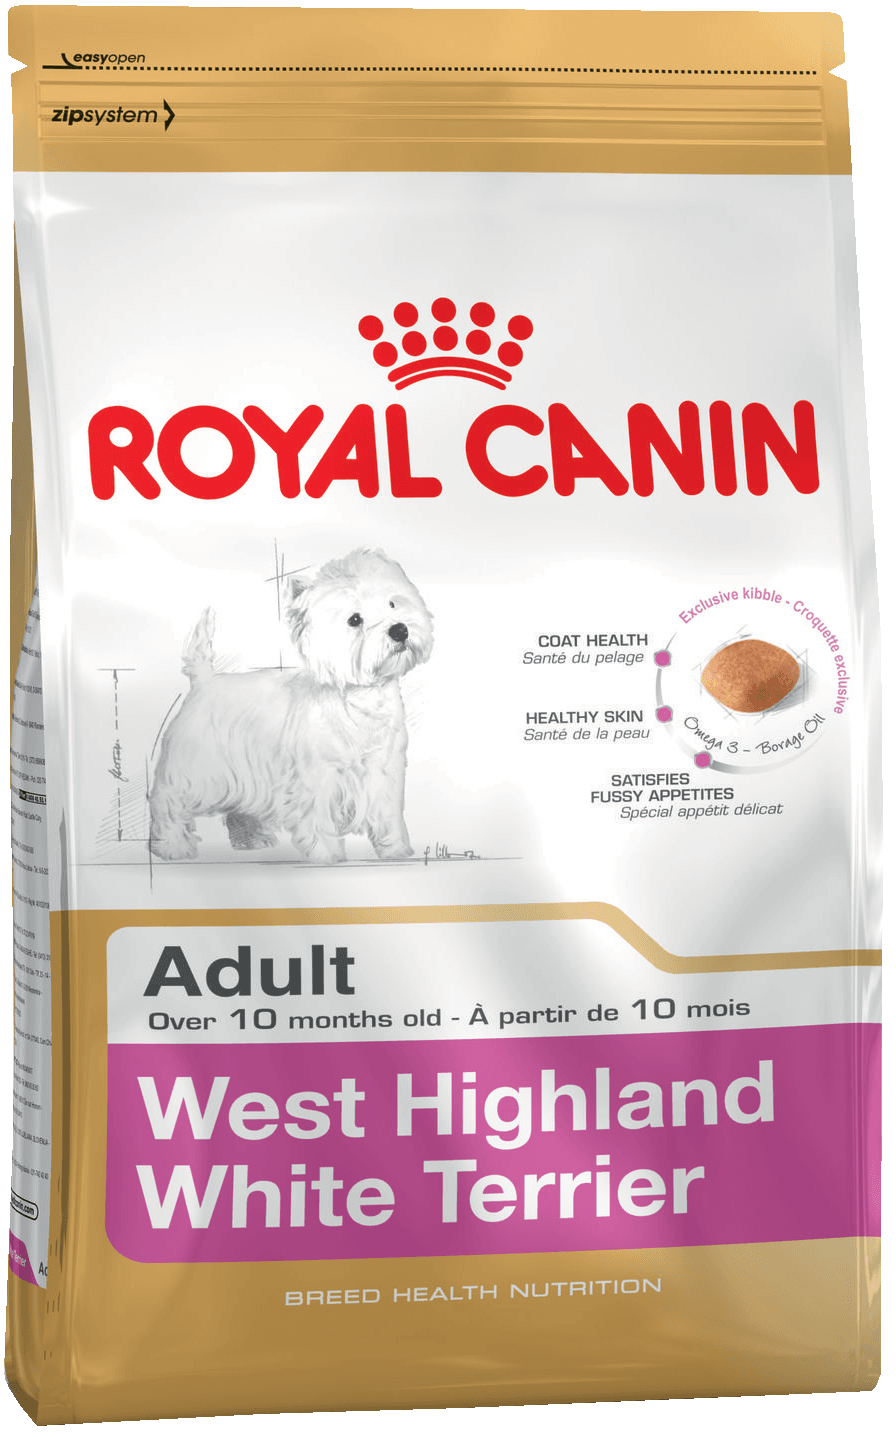 картинка  WEST HIGHLAND WHITE TERRIER ADULT от ЗОО-магазина К-9